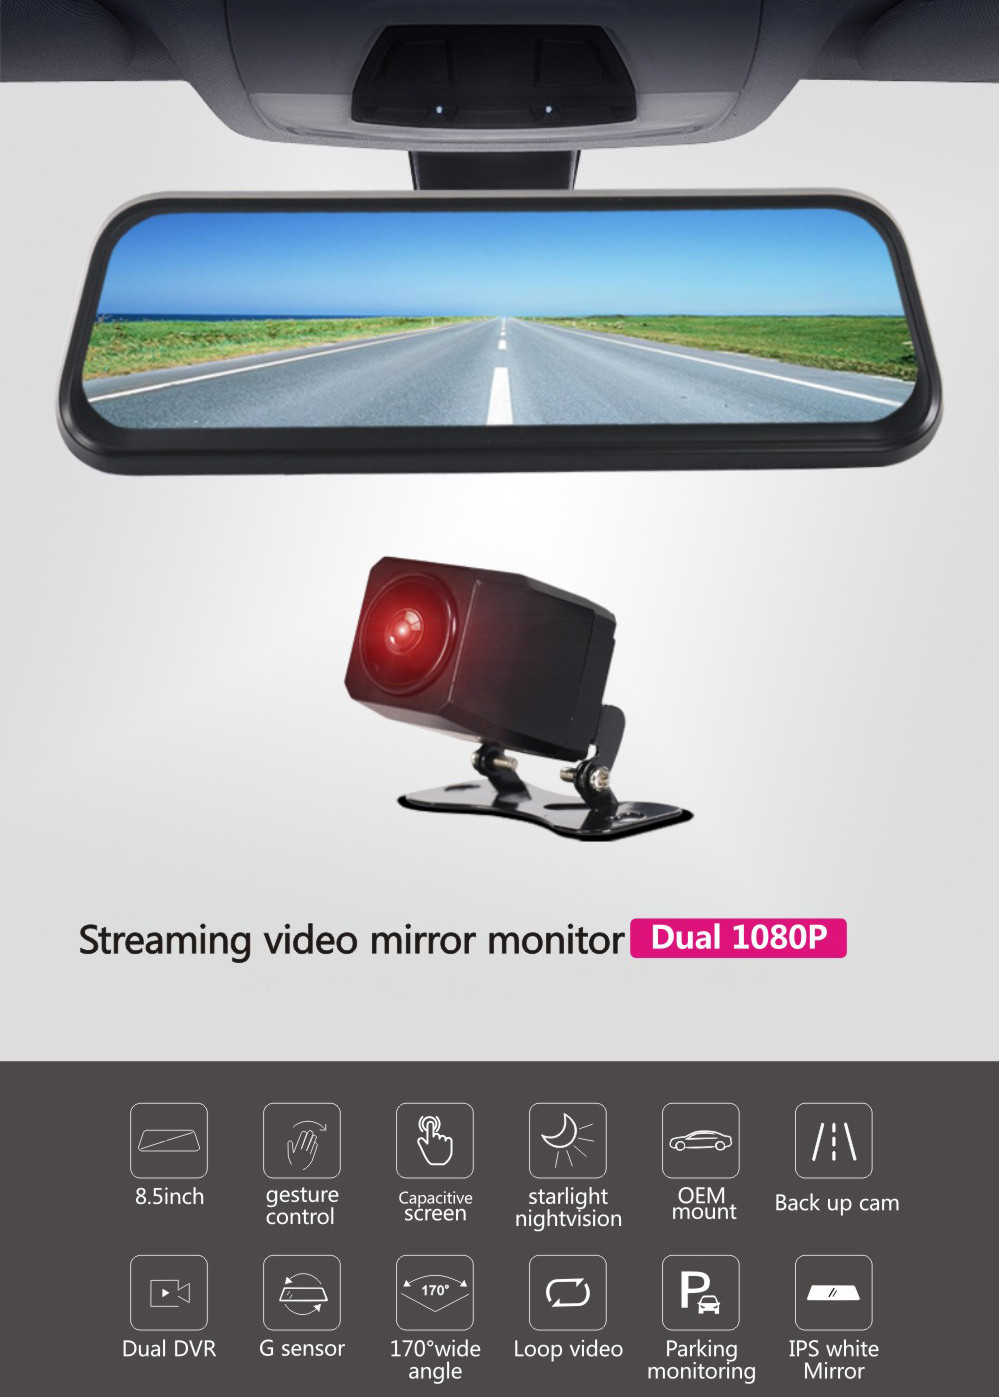 8.5-Inch Car DVR - Dual Camera, FHD Visuals, G-Sensor, 128GB SD Card Support, SD Card Recording, Wide Viewing Angle, for BMW